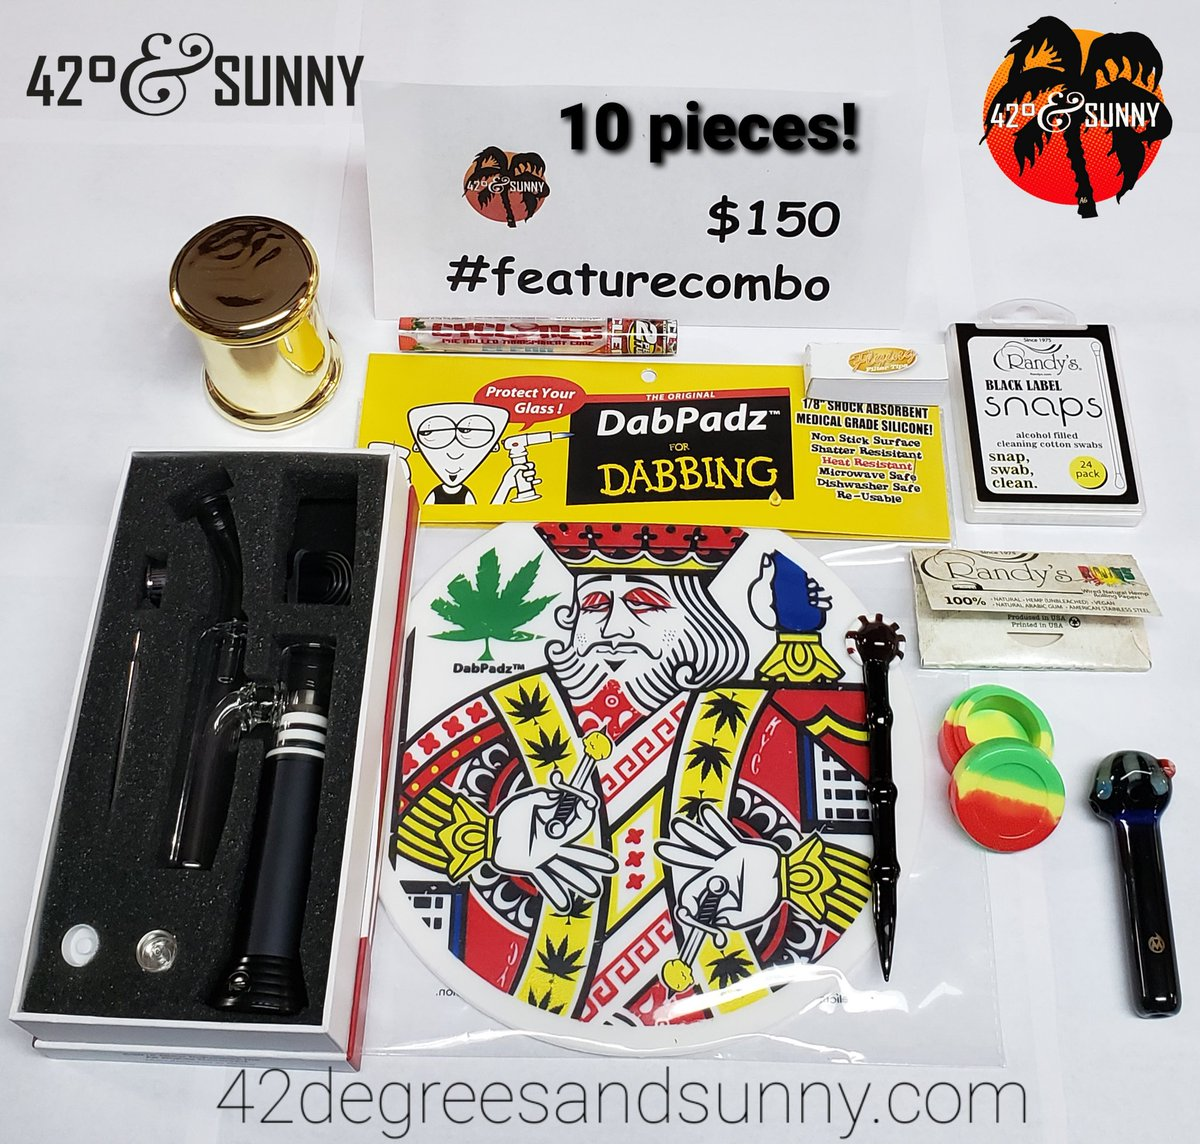 Today's #FeatureCombo is 10 pieces for only $150! This electric rig comes with multiple nails, and everything you need for dabbing on the go. #ElectricRig #Dabber #DabPadz #OilSlick #StashJar #ClearCyclones #RandysSnaps #RandysWiredPapers #HandPipe #FilterTips https://t.co/PDHep3FxfU